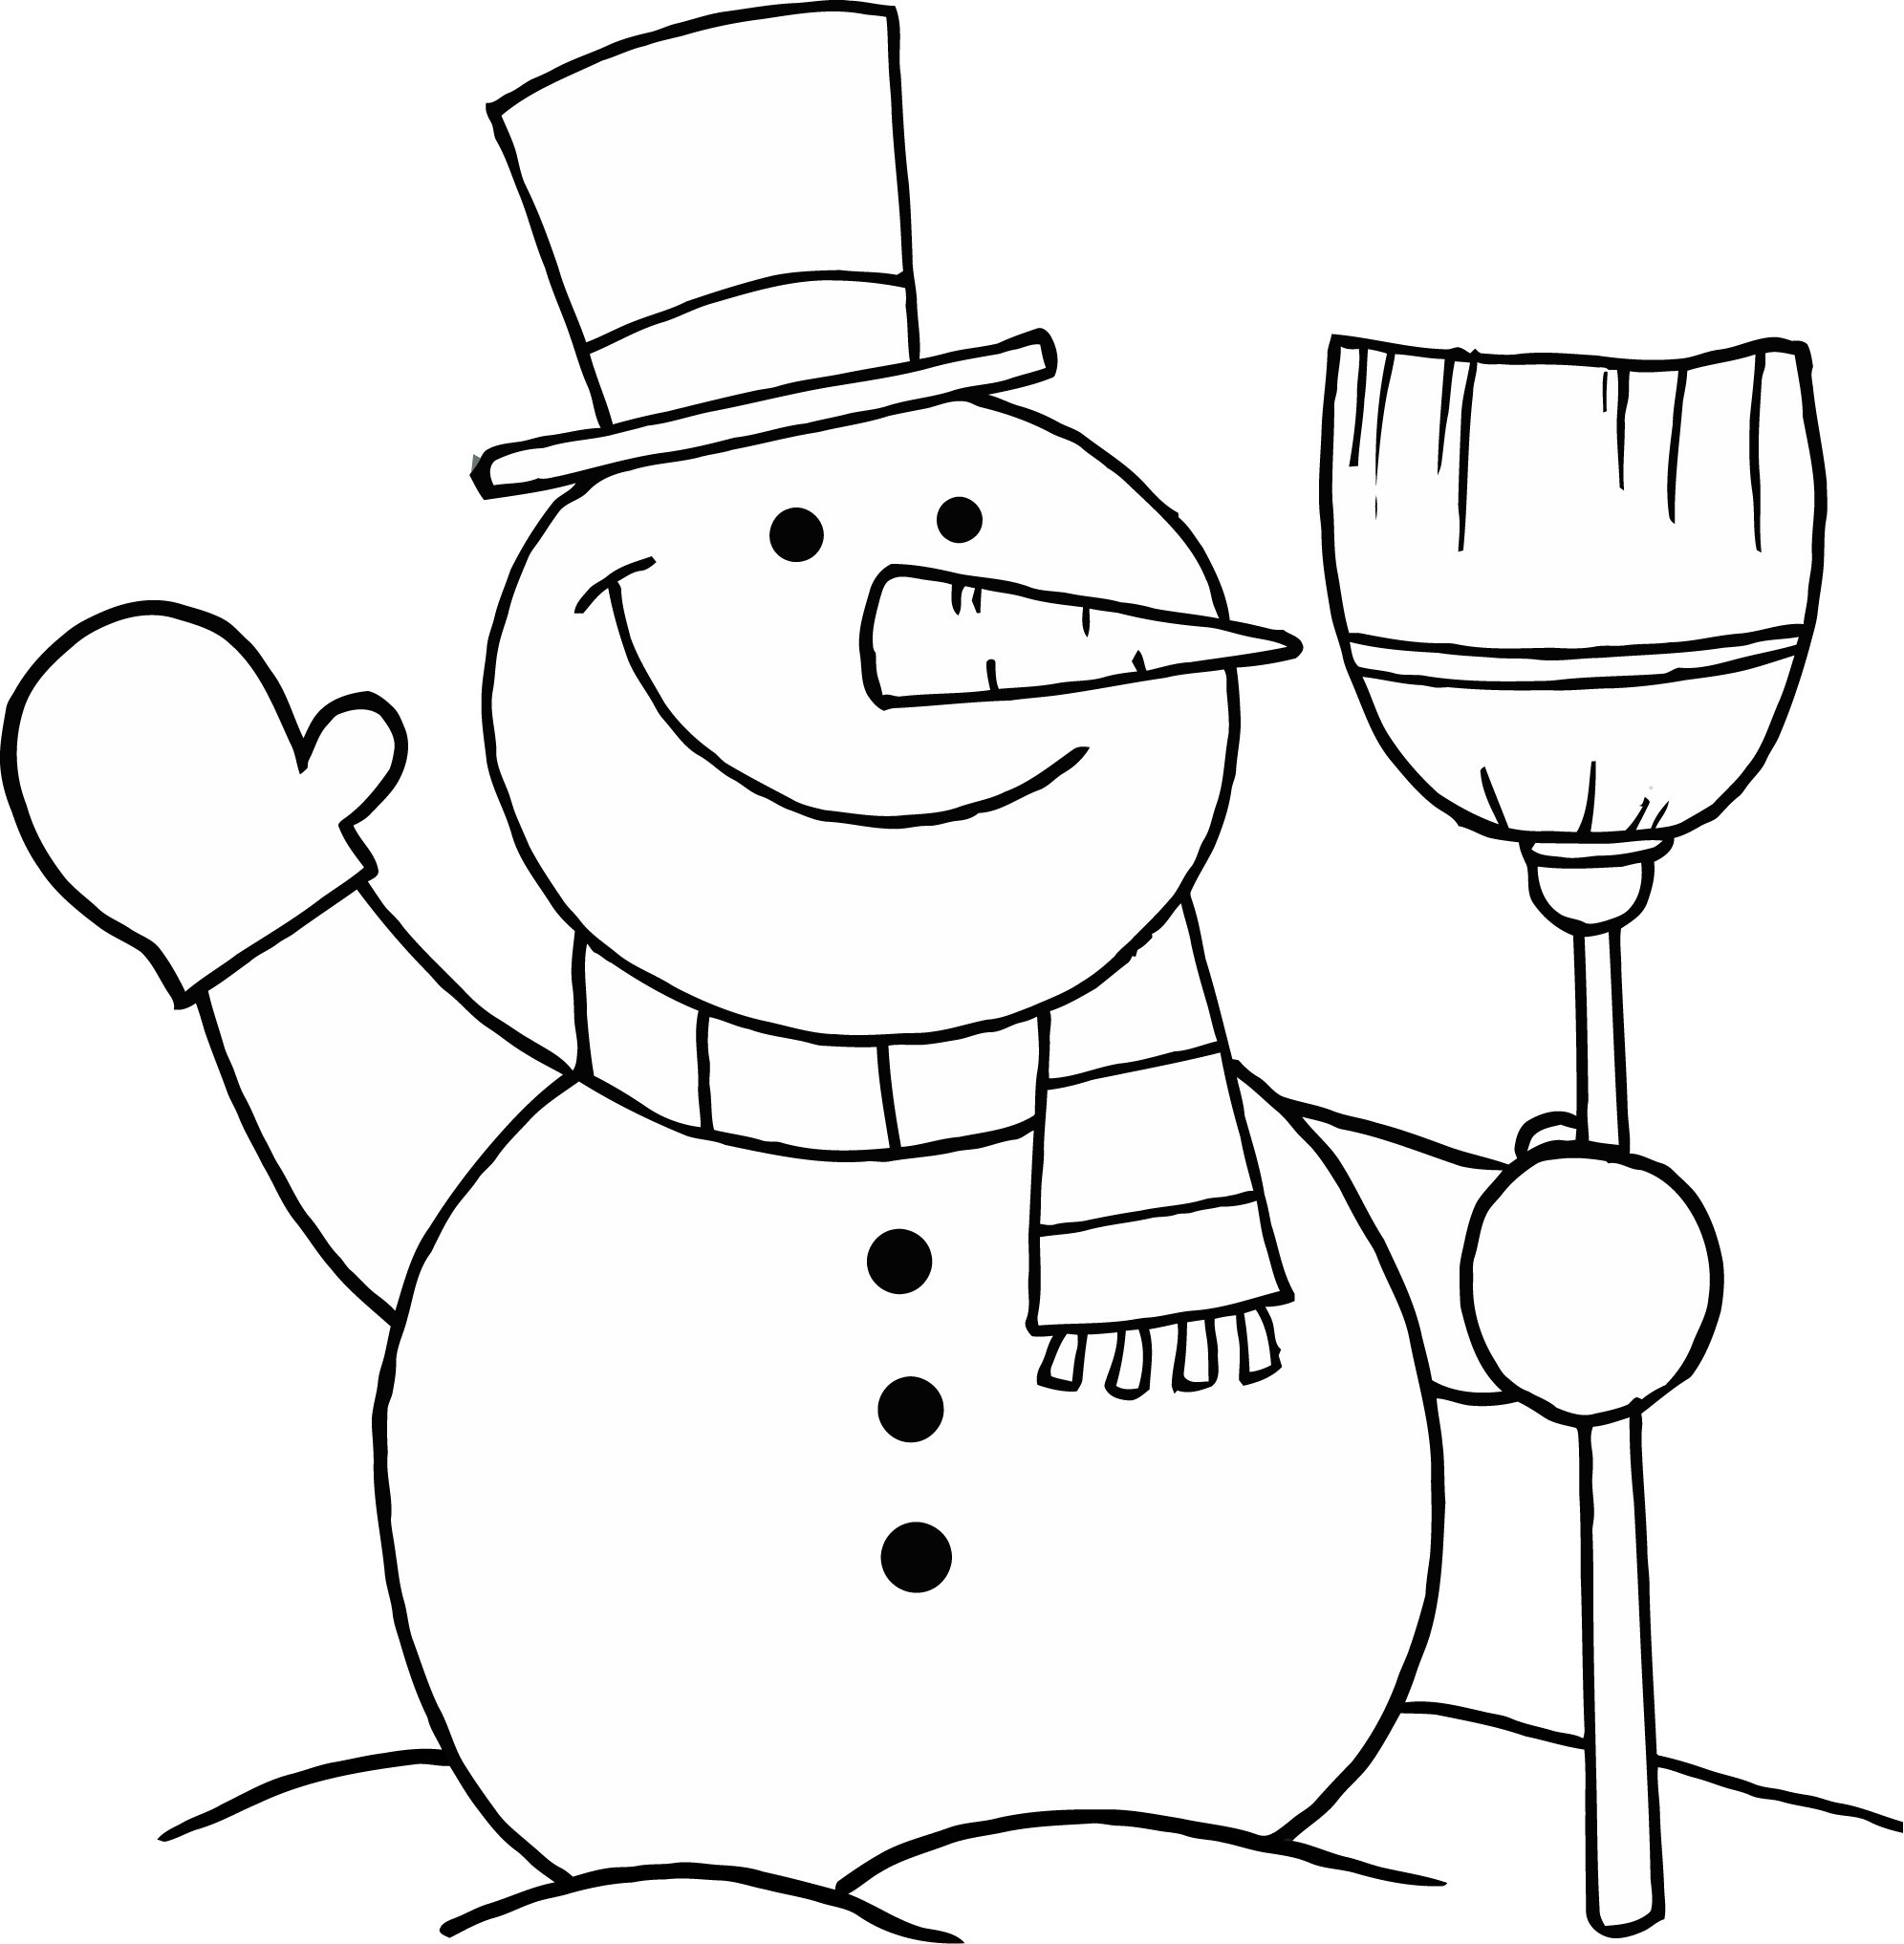 1992x2034 Blank Snowman Coloring Pages Disney To Print Of Christmas